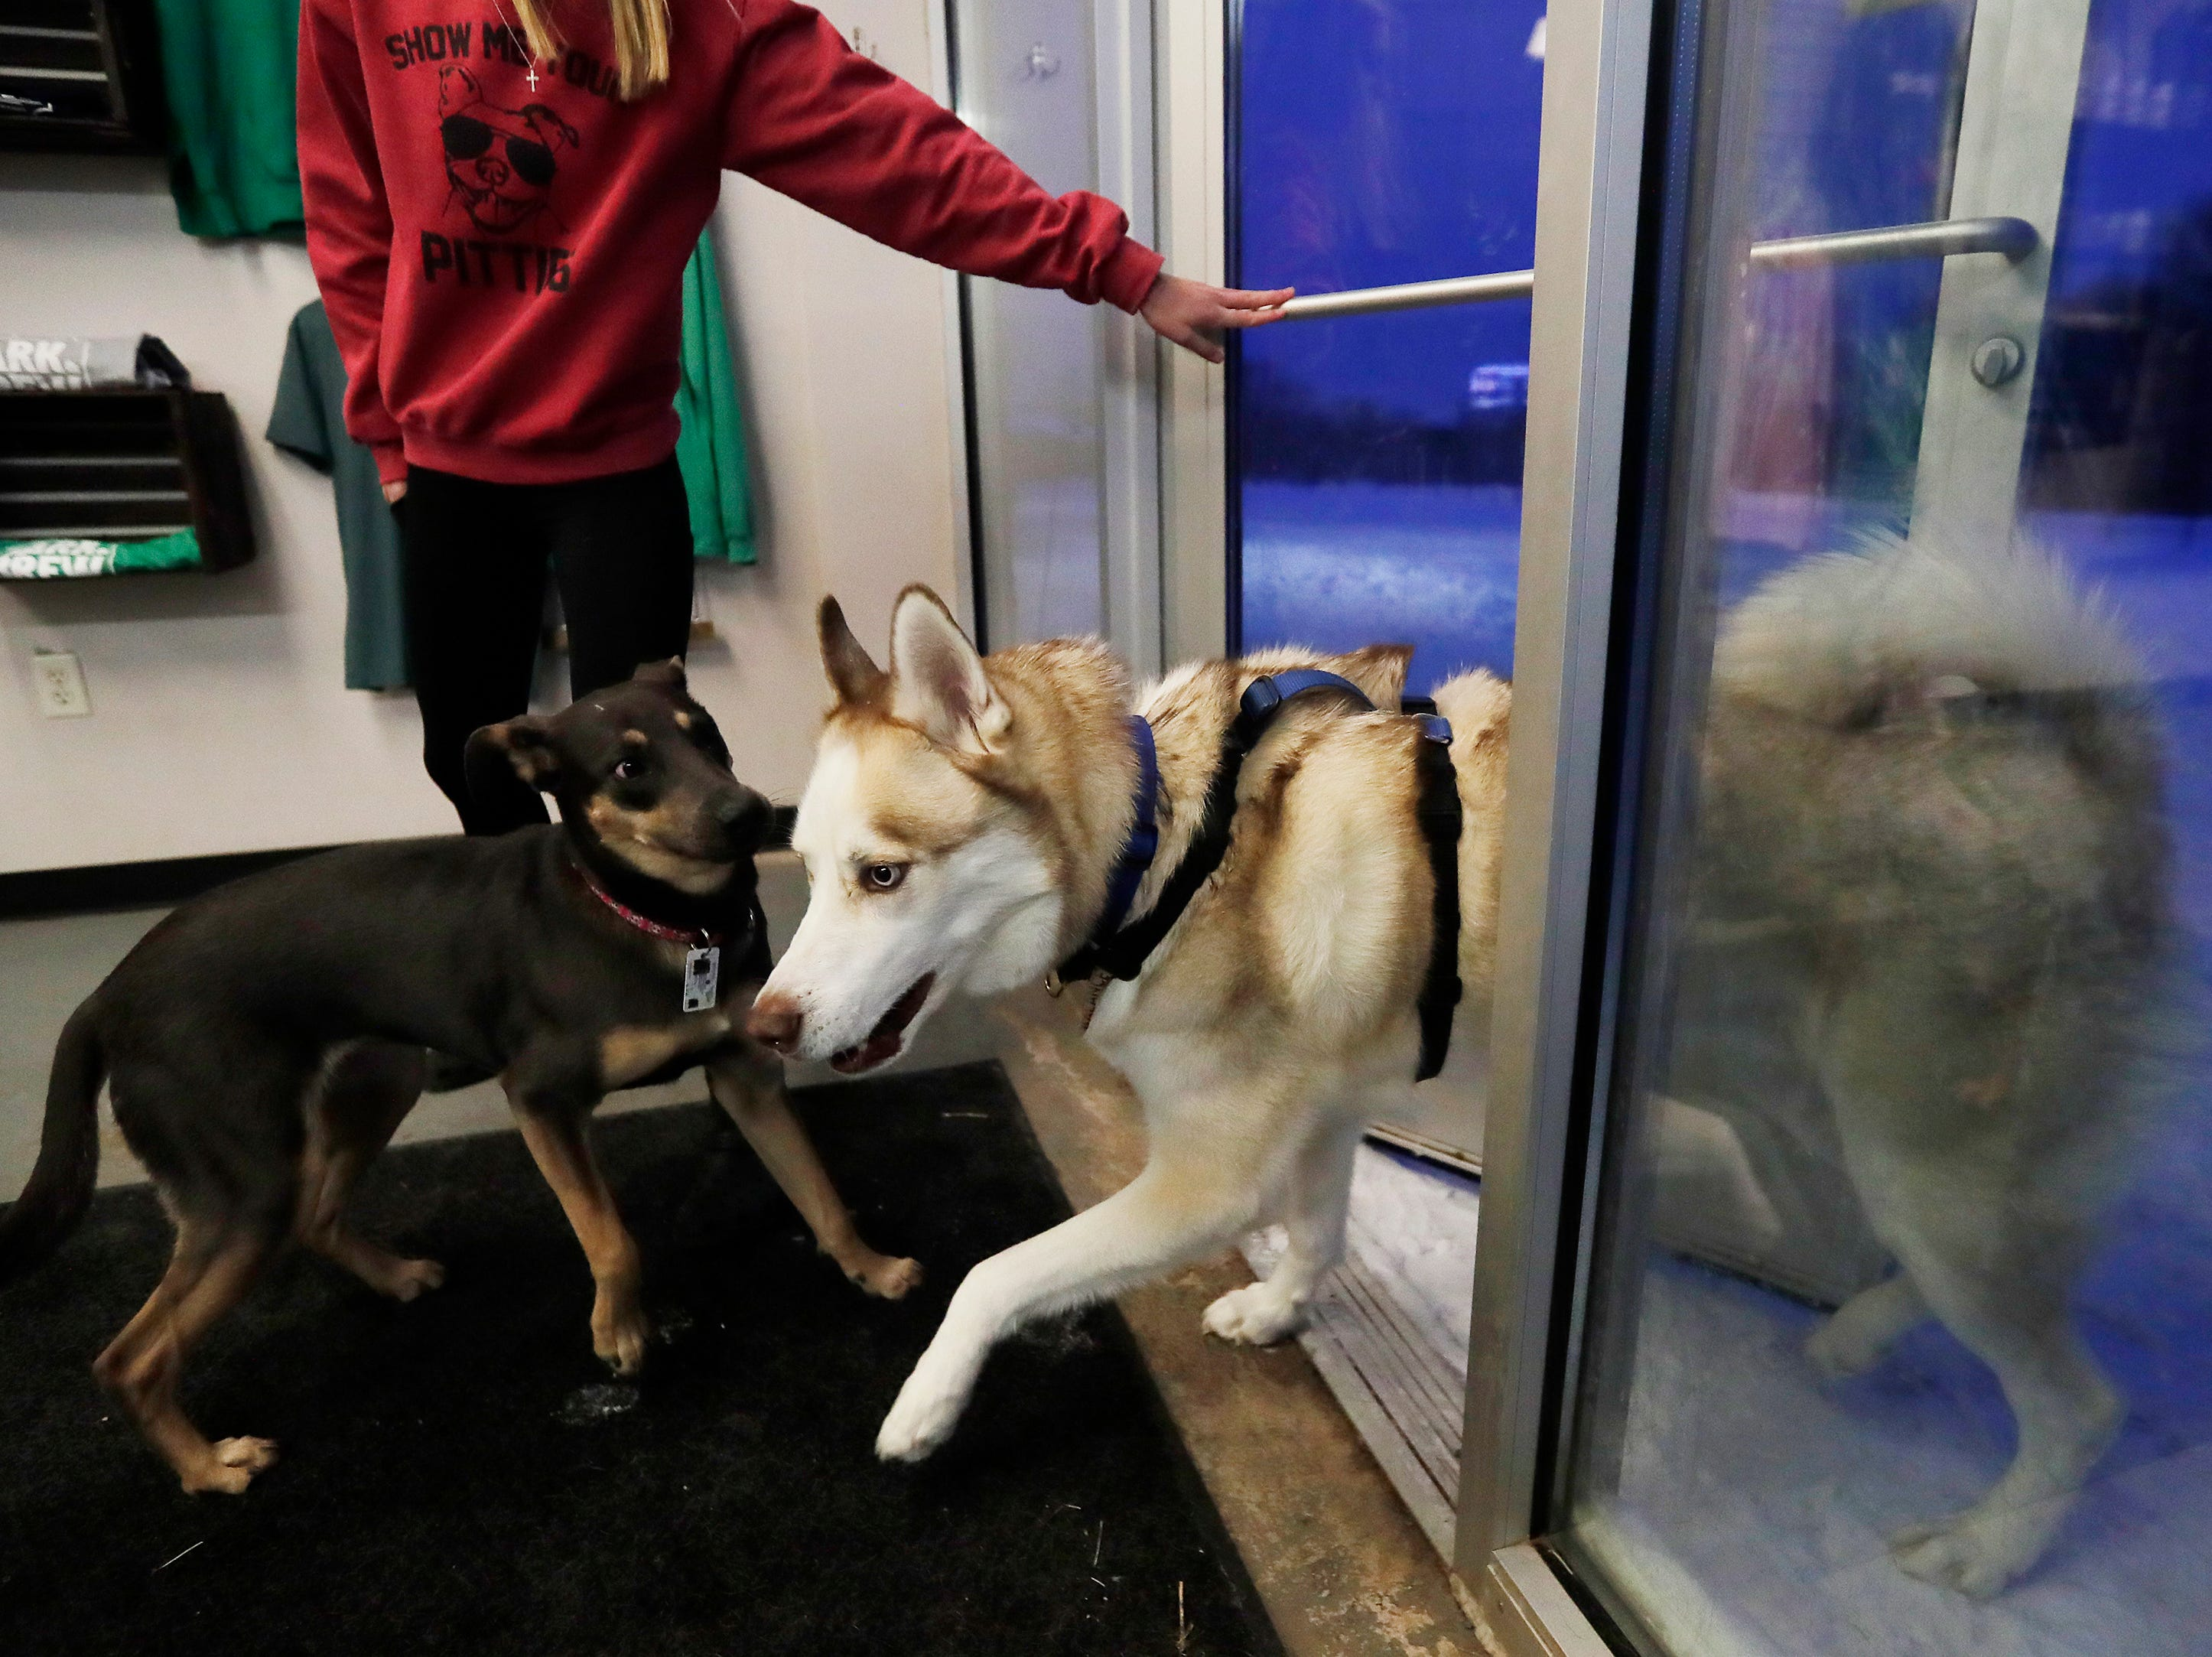 Dogs are let inside from the outdoor exercise area at Bark and Brew on Tuesday, Jan. 29, 2019, in Suamico, Wis.